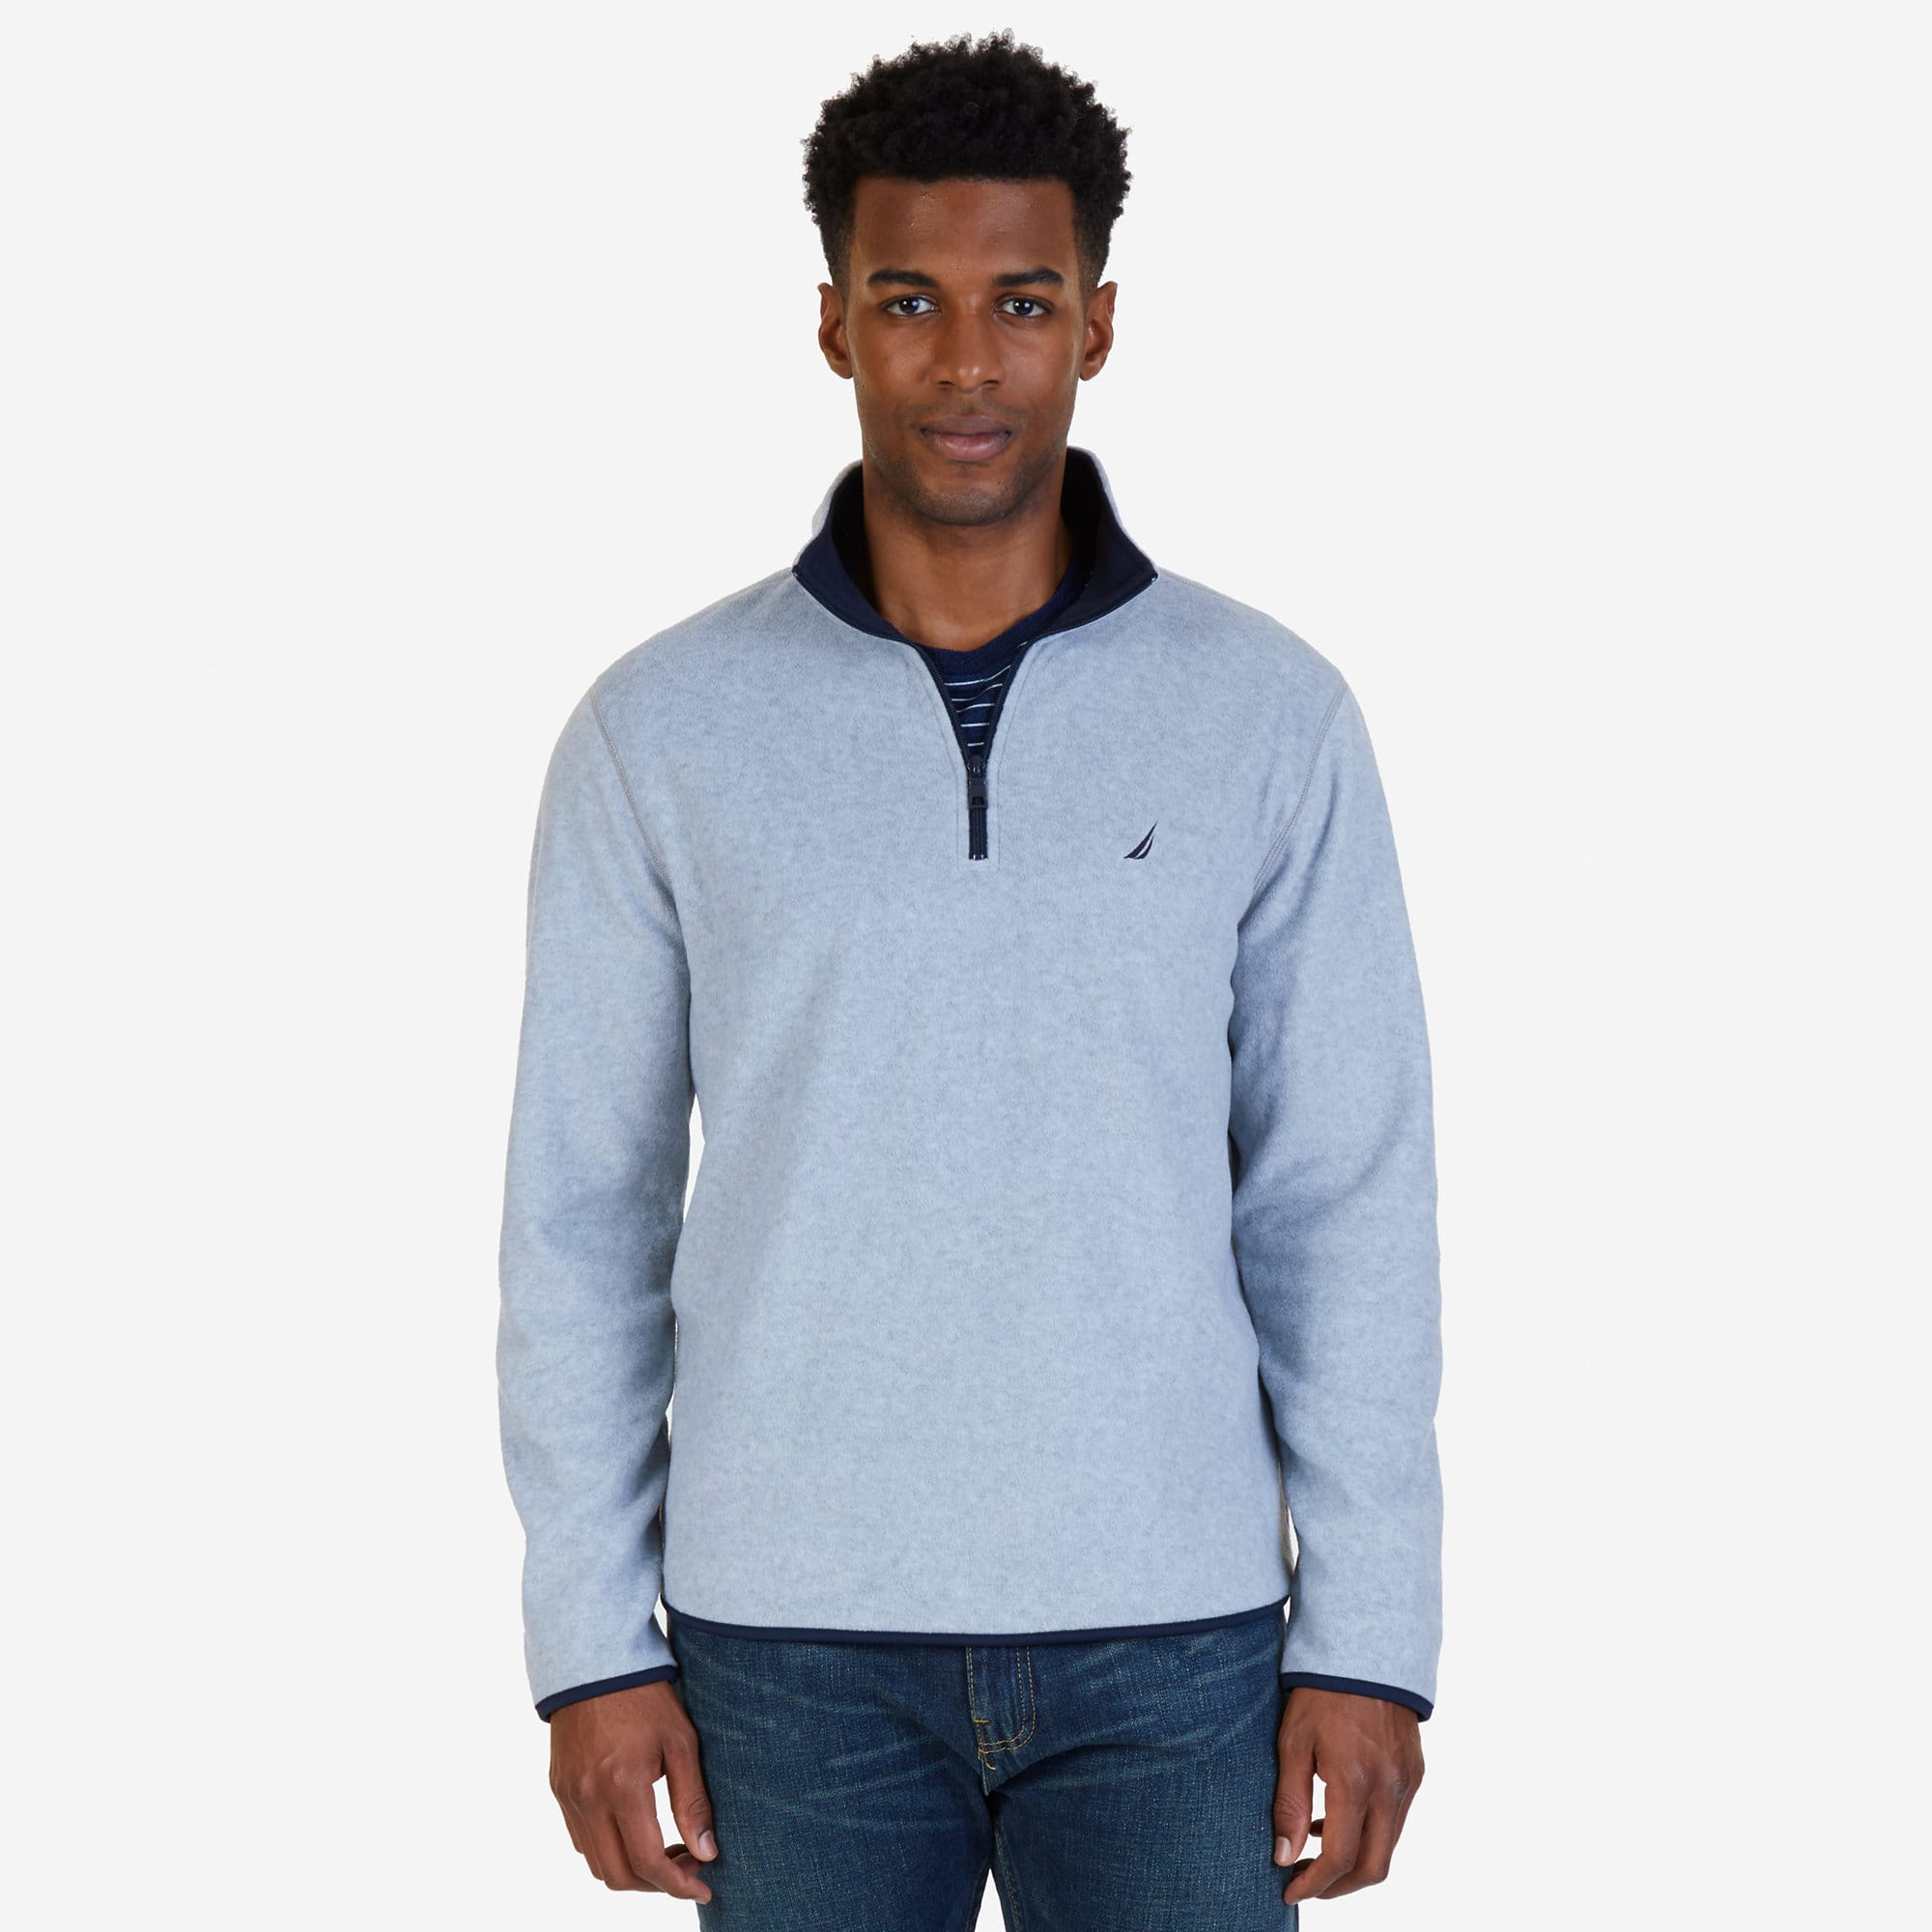 Nautica: Extra 50% Off Select Styles or 40% Off Sale Styles + Free Shipping